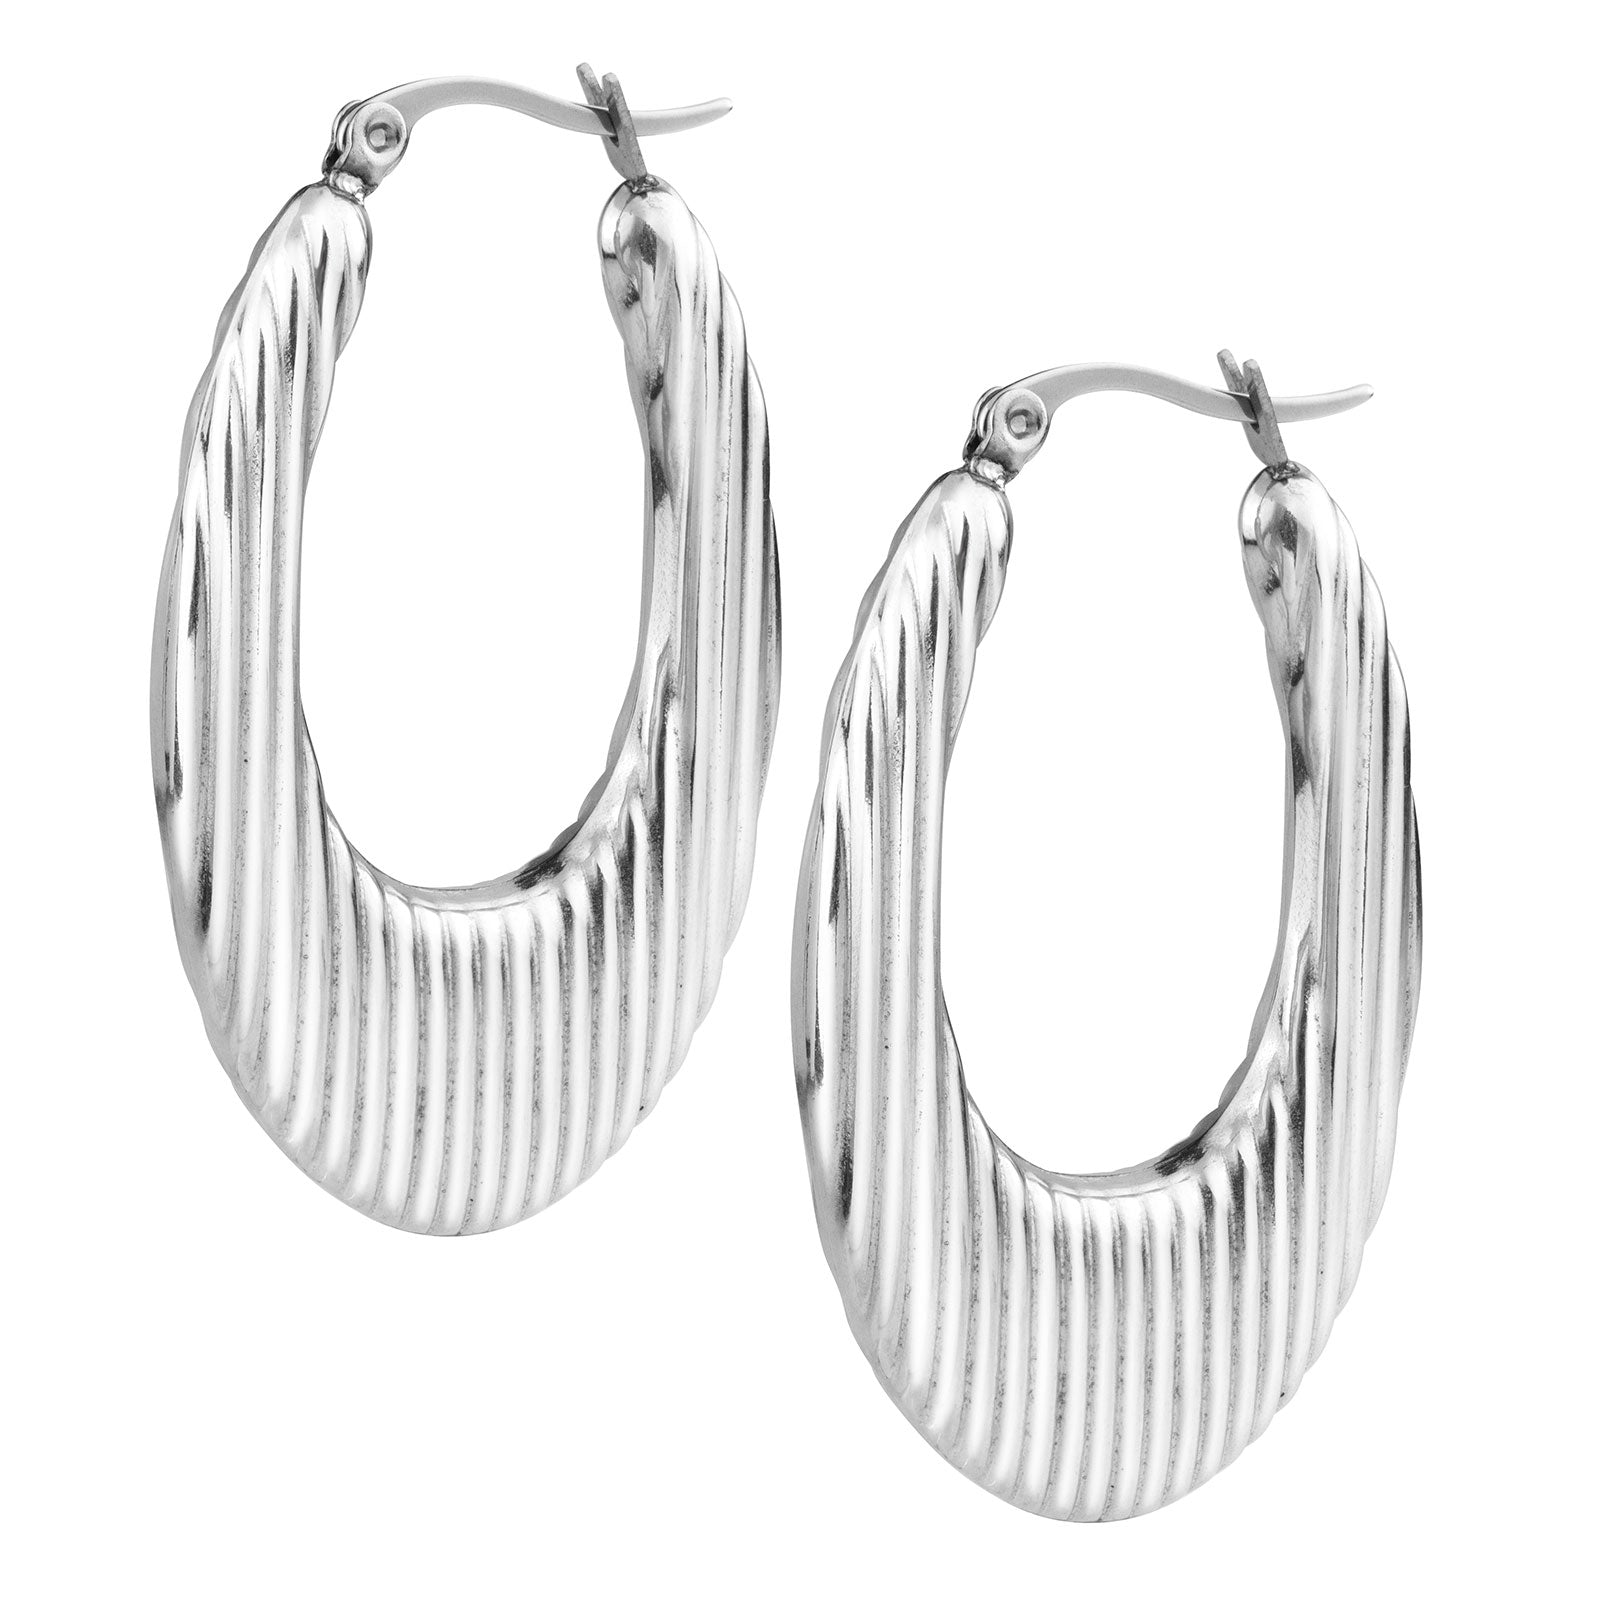 FSER59-A Stainless Steel Shrimp Earrings